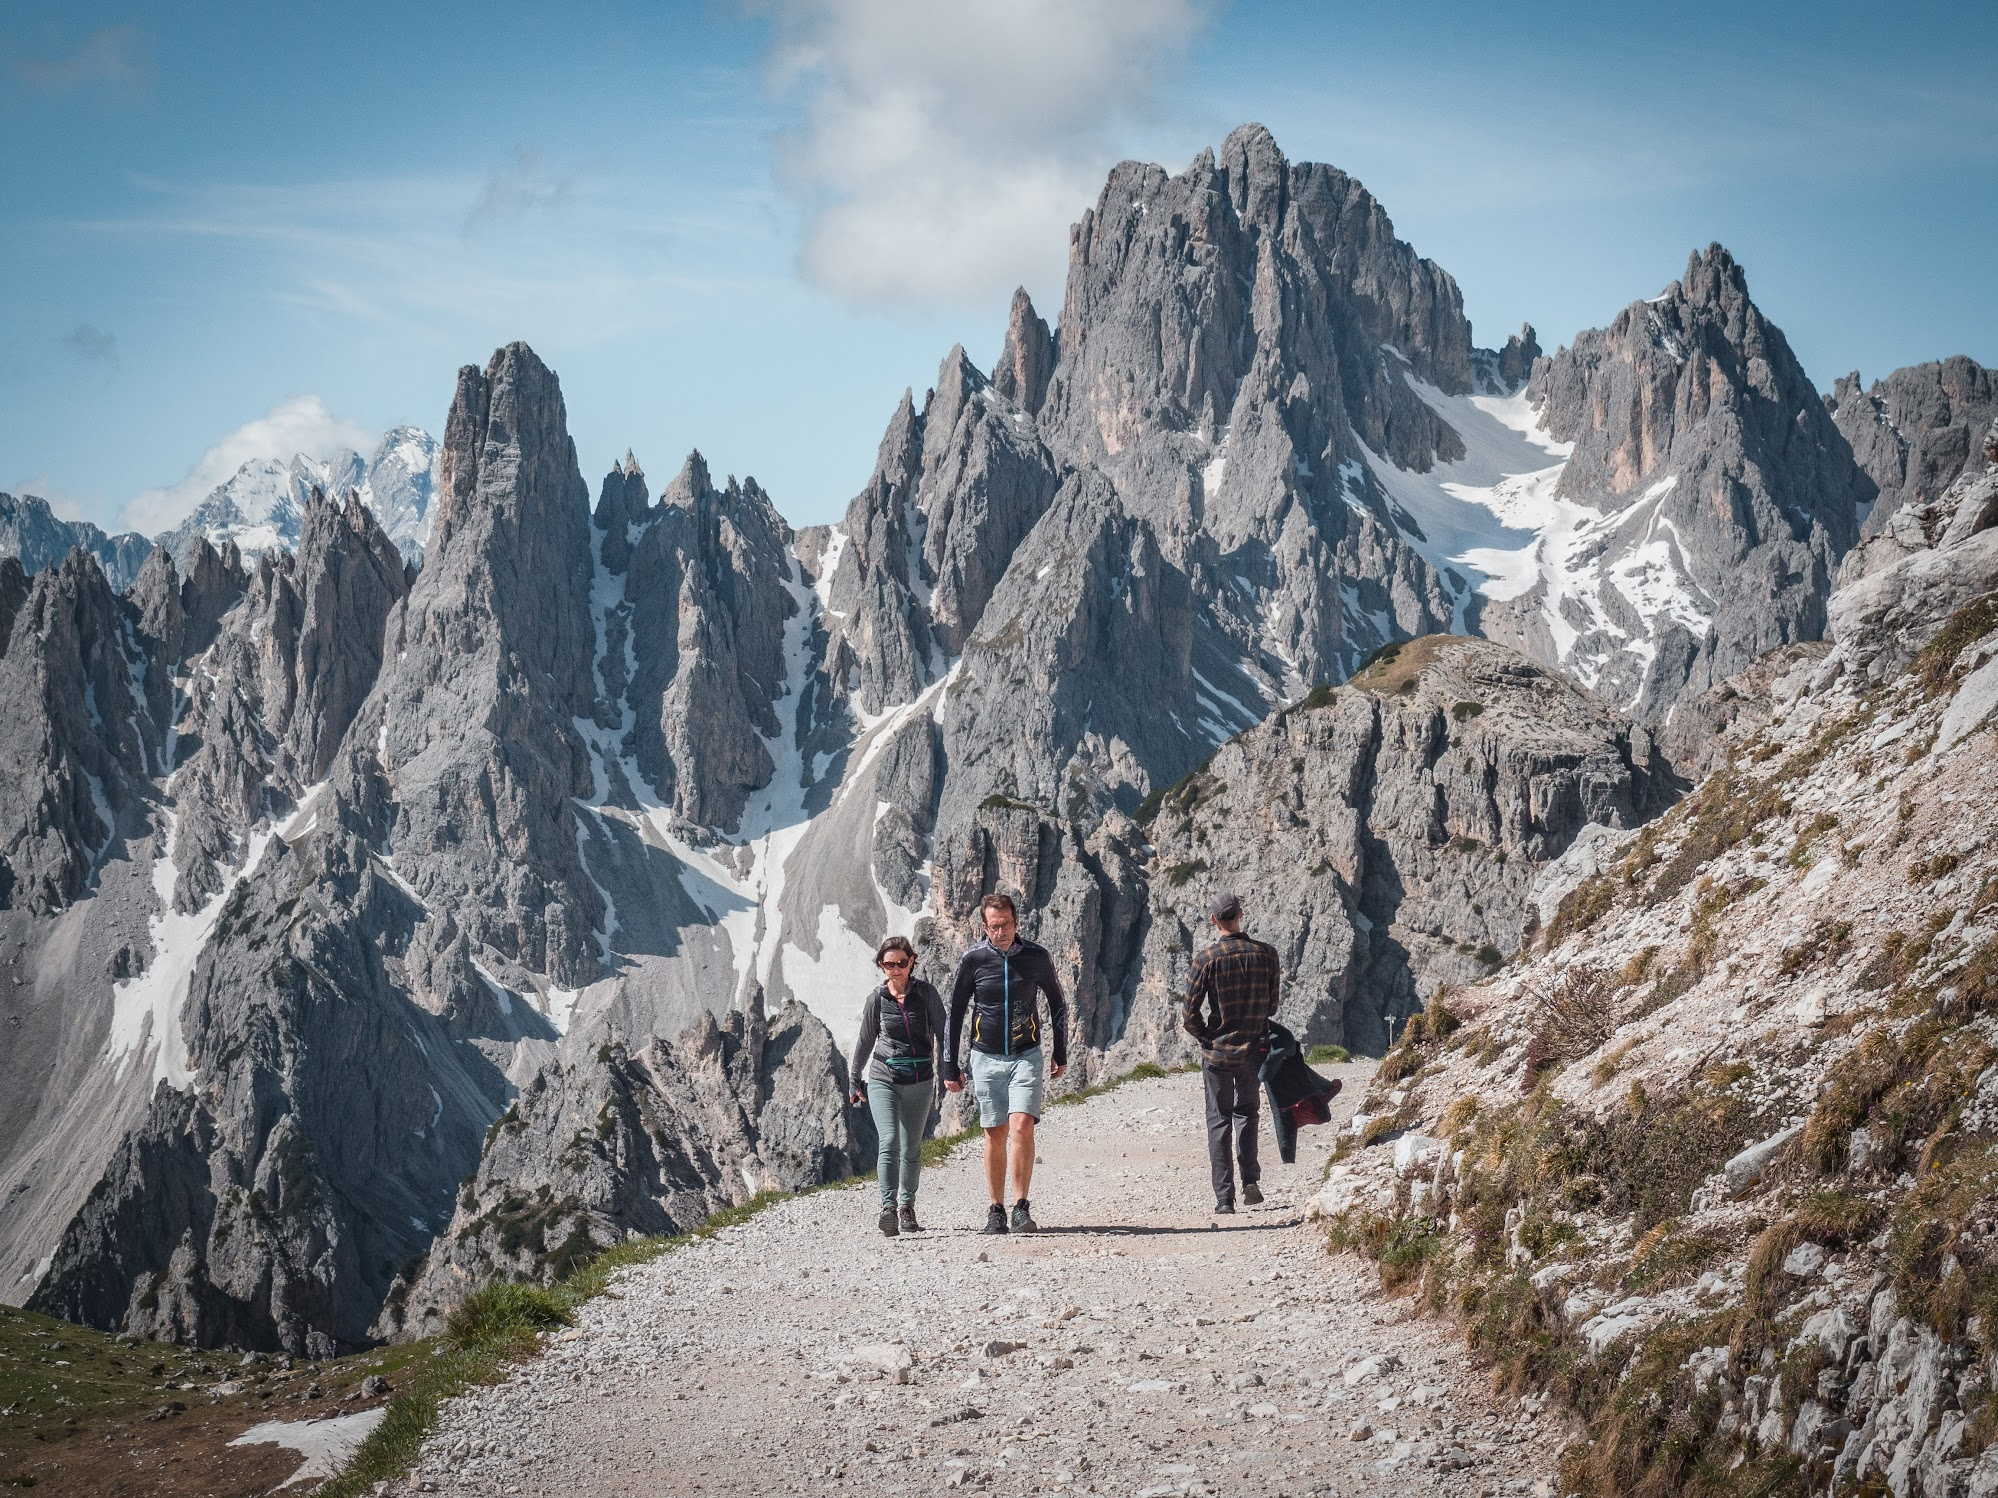 Hiking near Tre Cime de Lavaredo, with Misurina Peaks on the background.